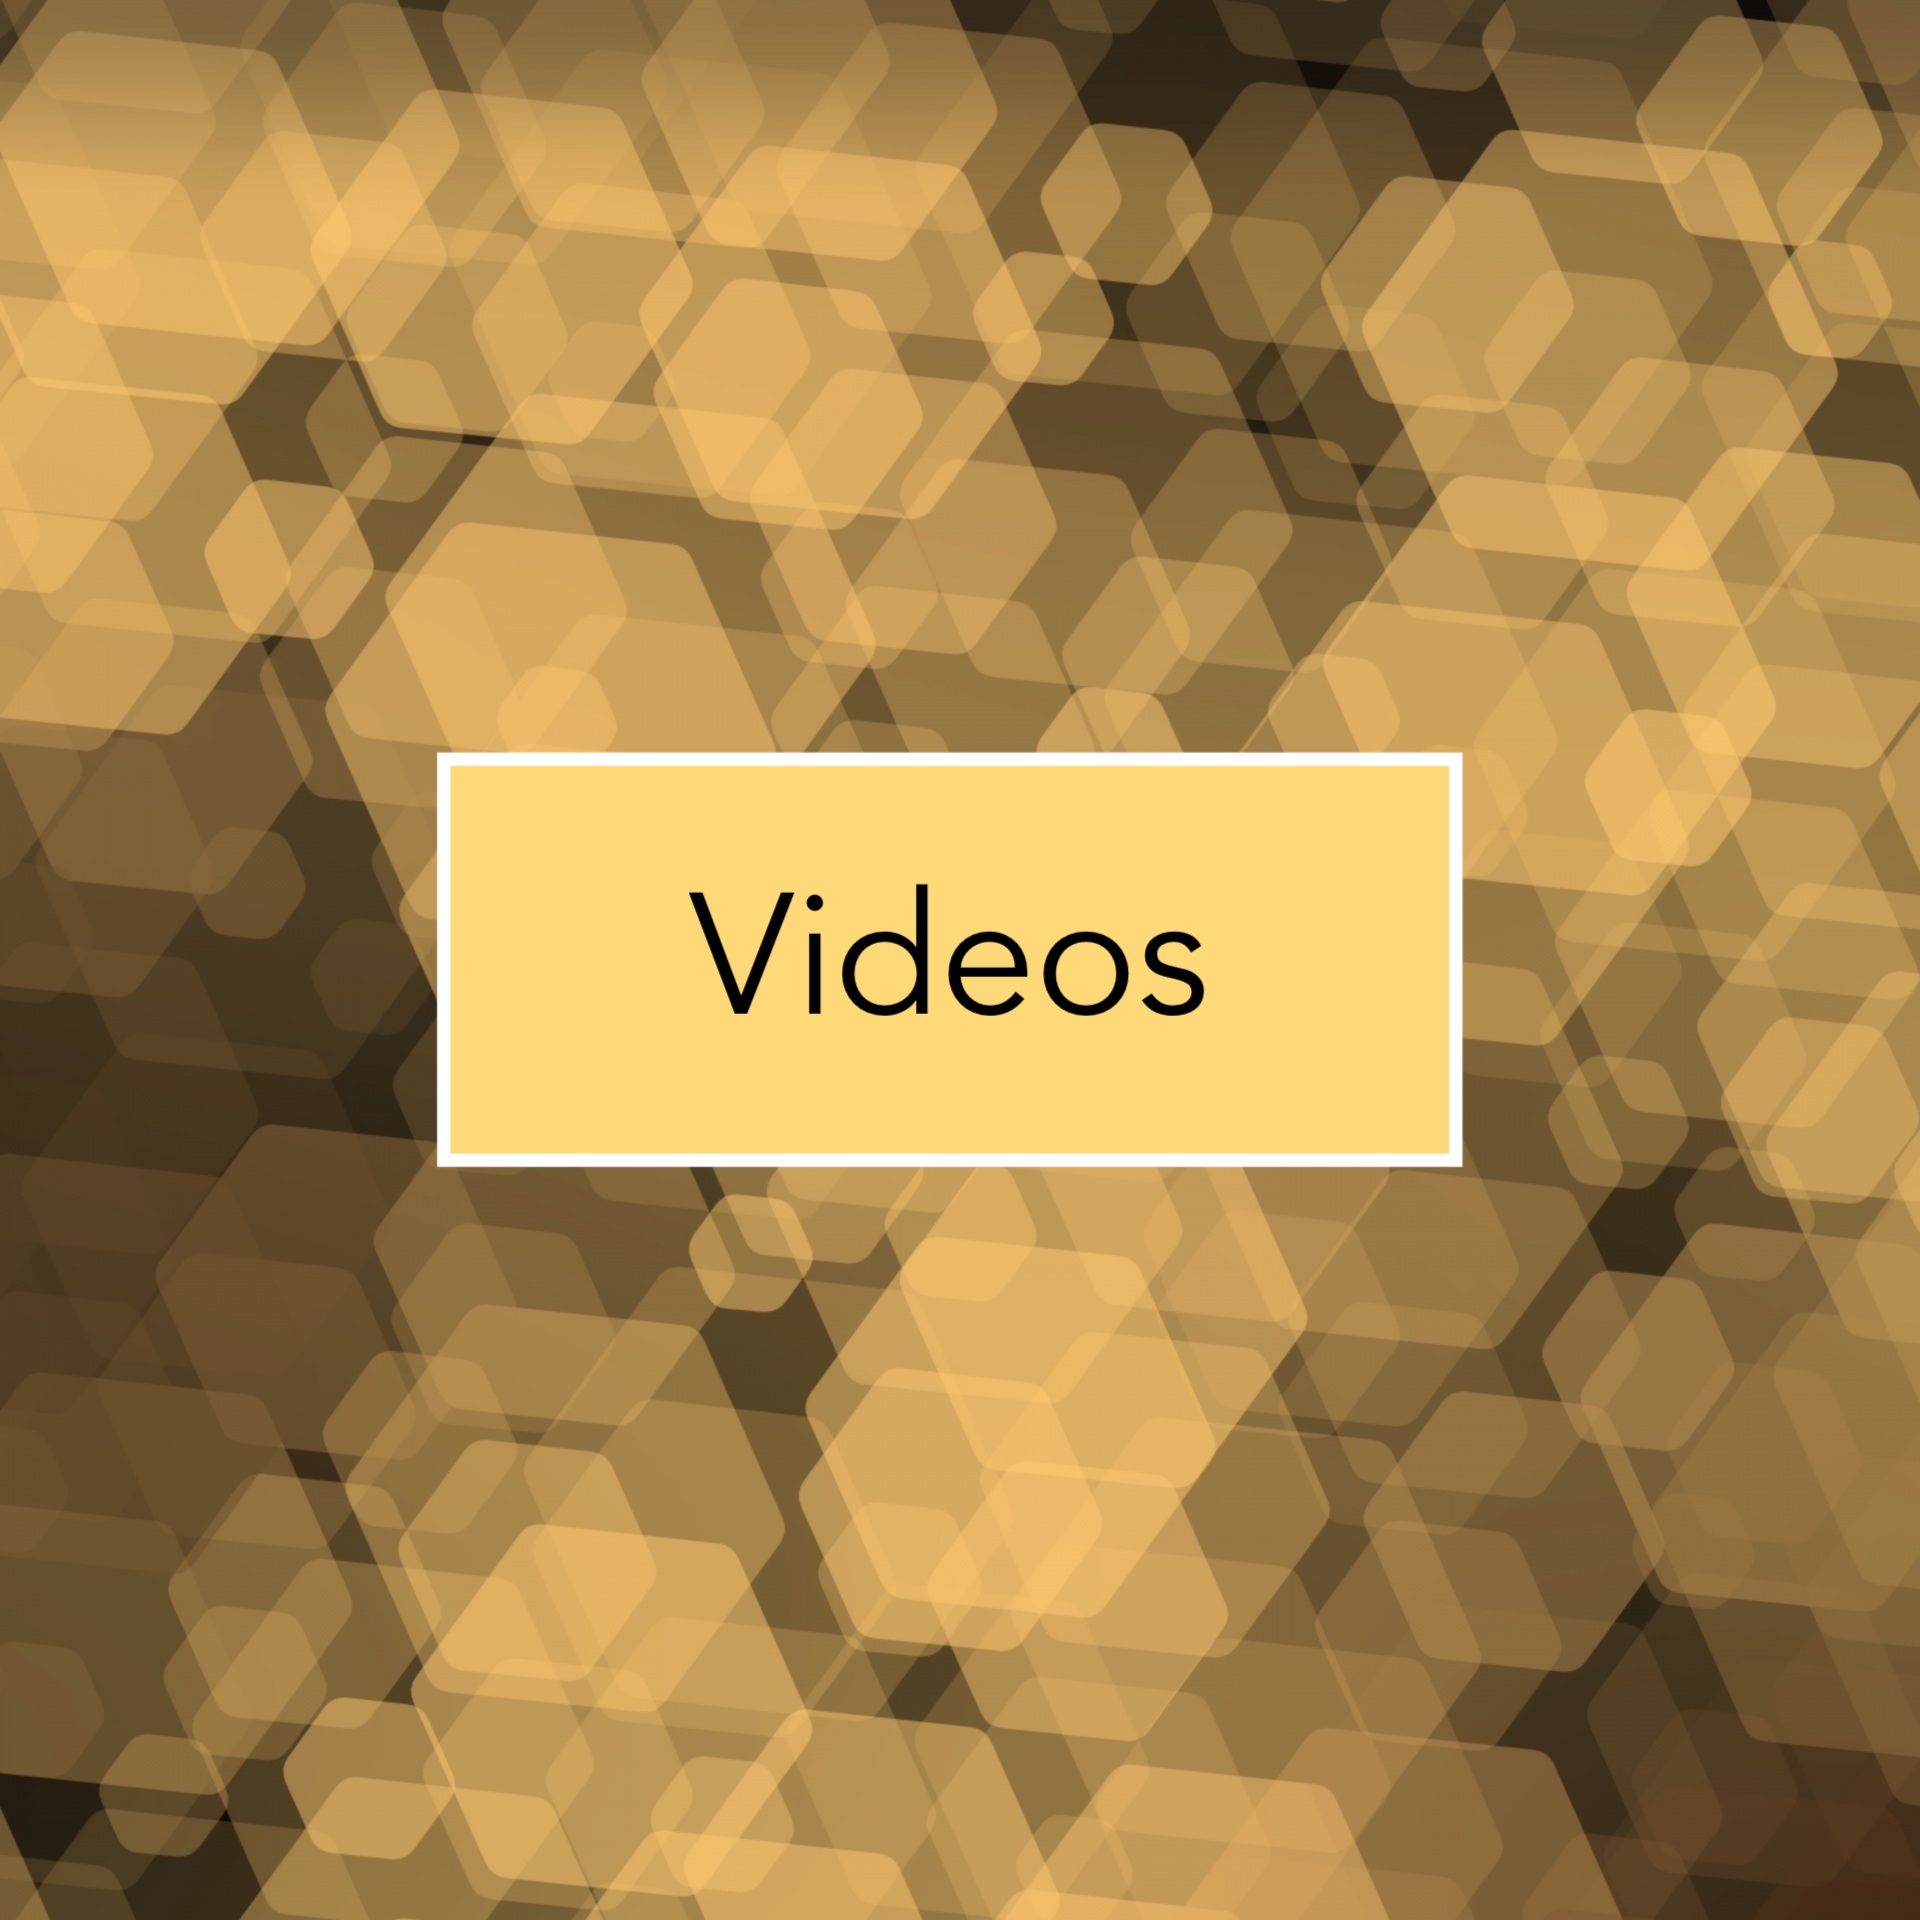 Videos yellow blurred hexagons